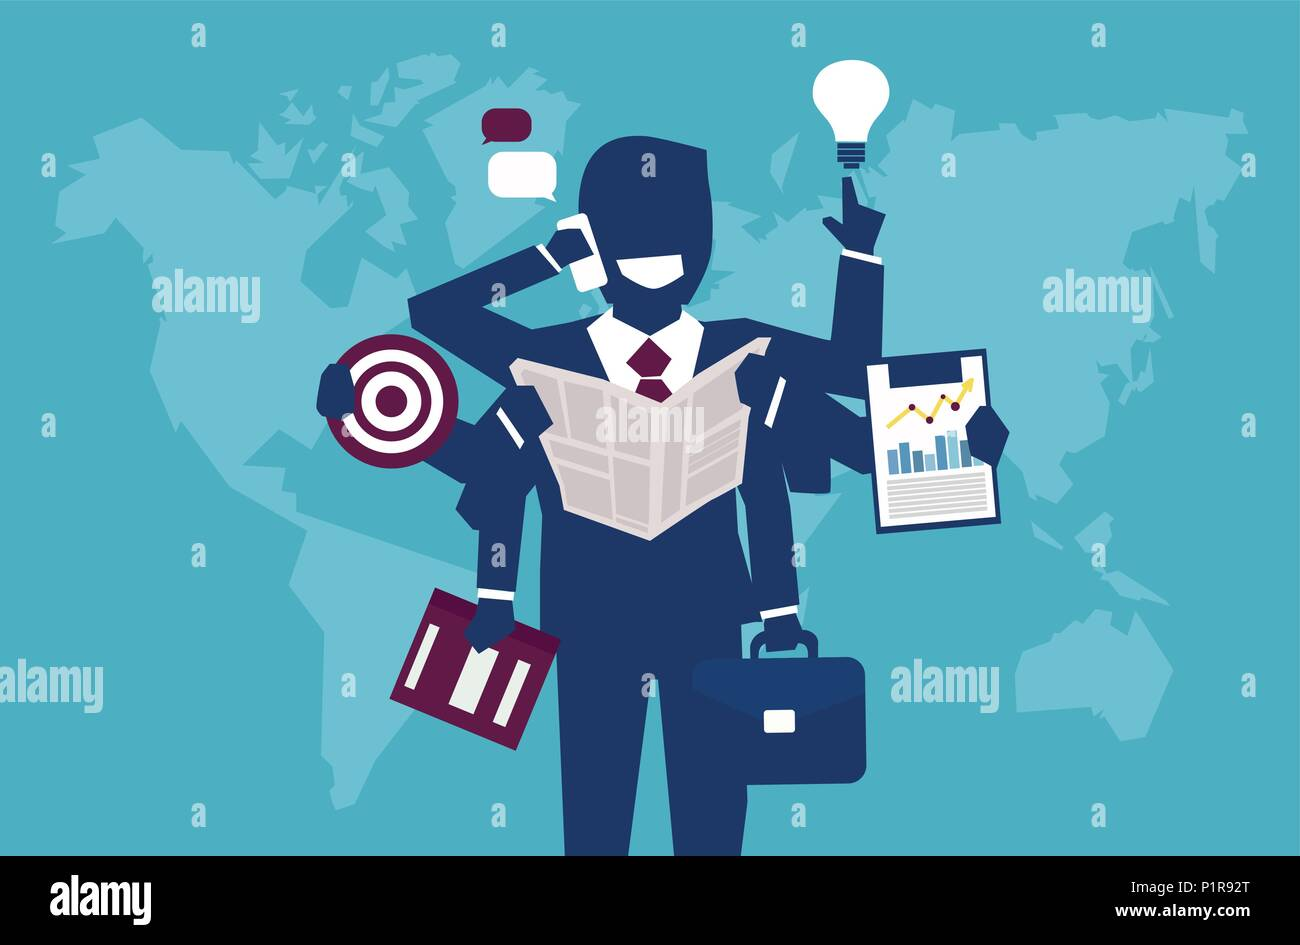 Vector illustration of businessman with plenty of hands managing to complete all goals. - Stock Image